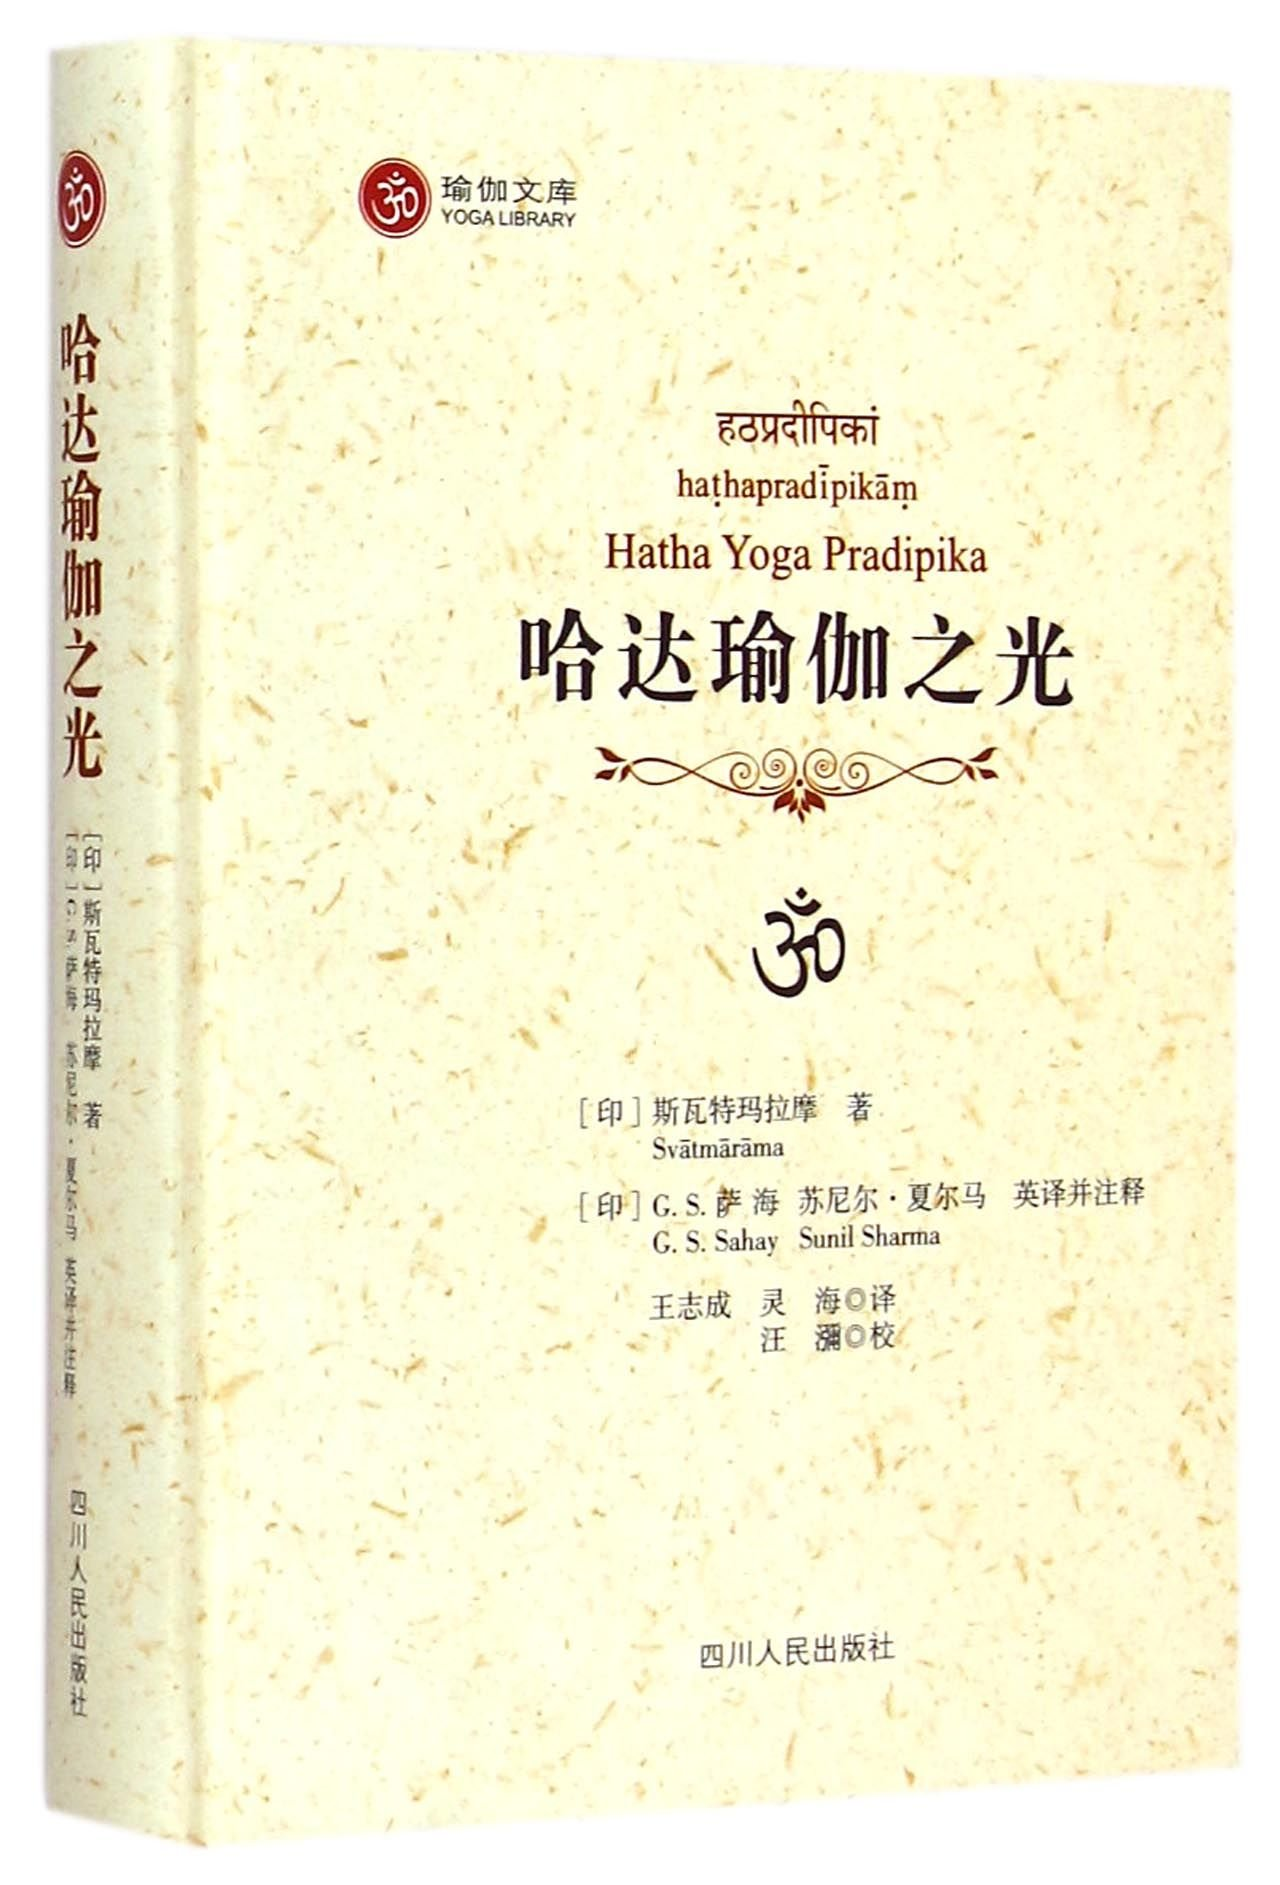 Hatha Yoga Pradipika Hardcover) (Chinese Edition ...